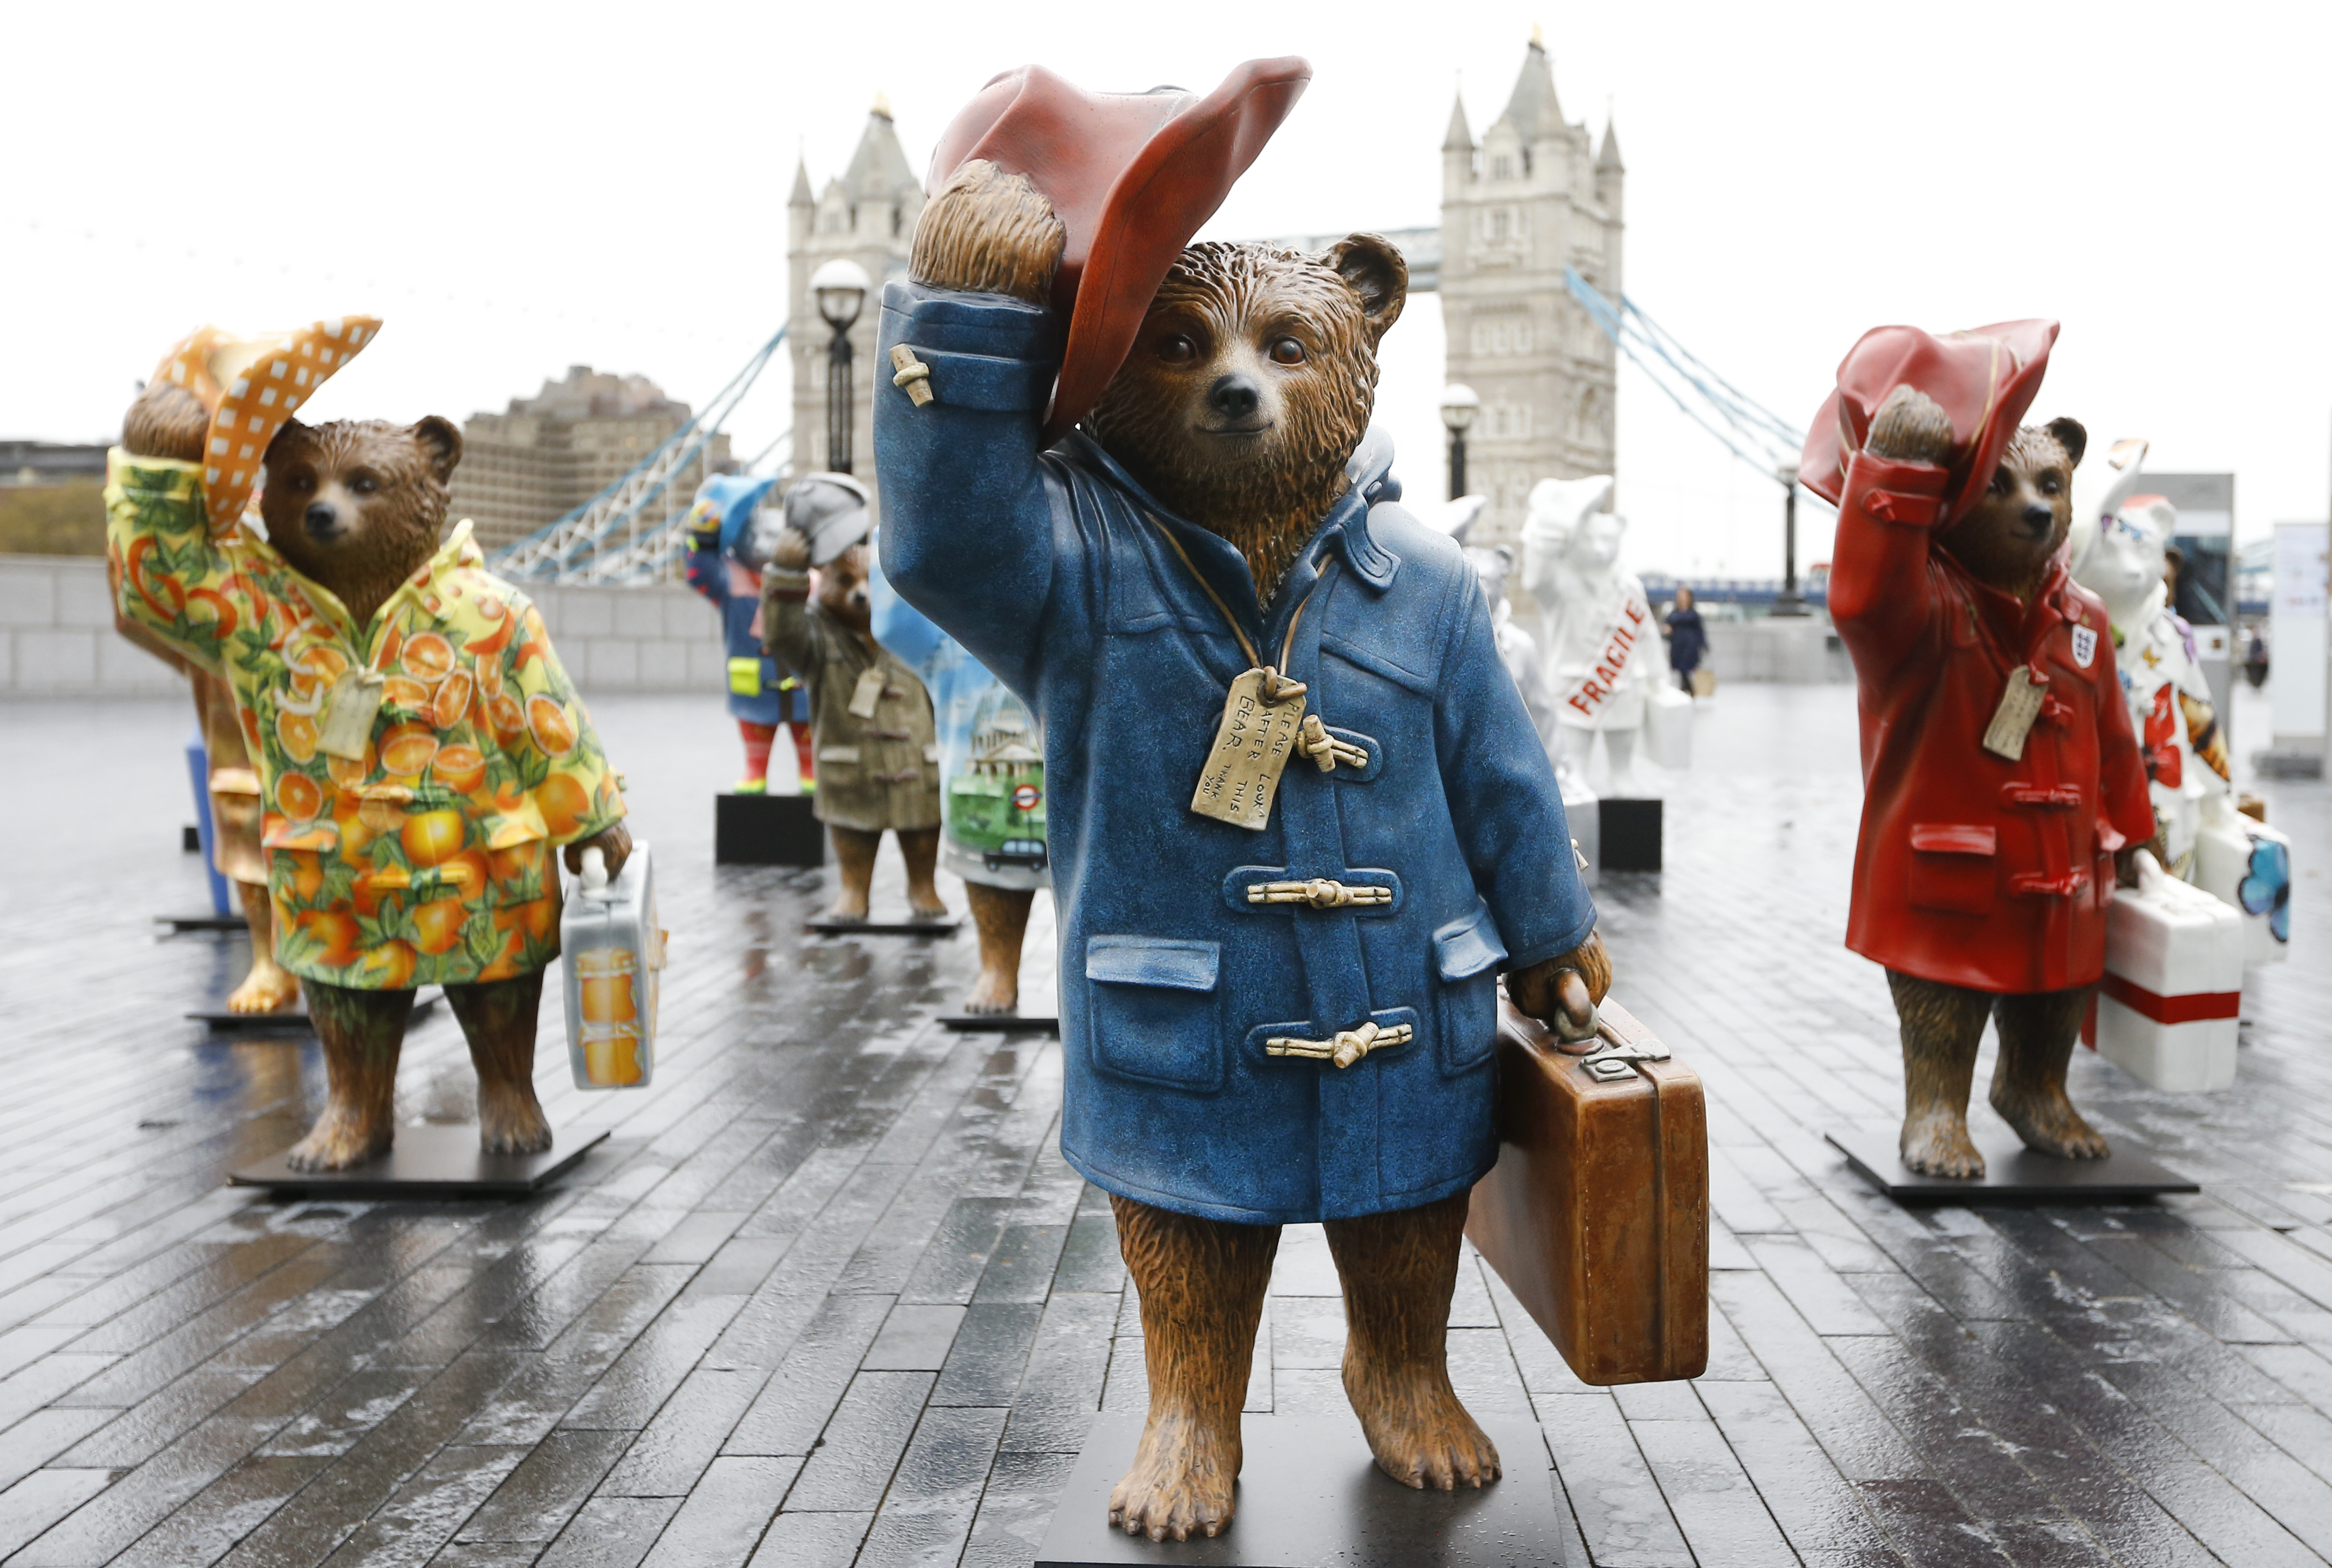 Paddington Bear statues in London